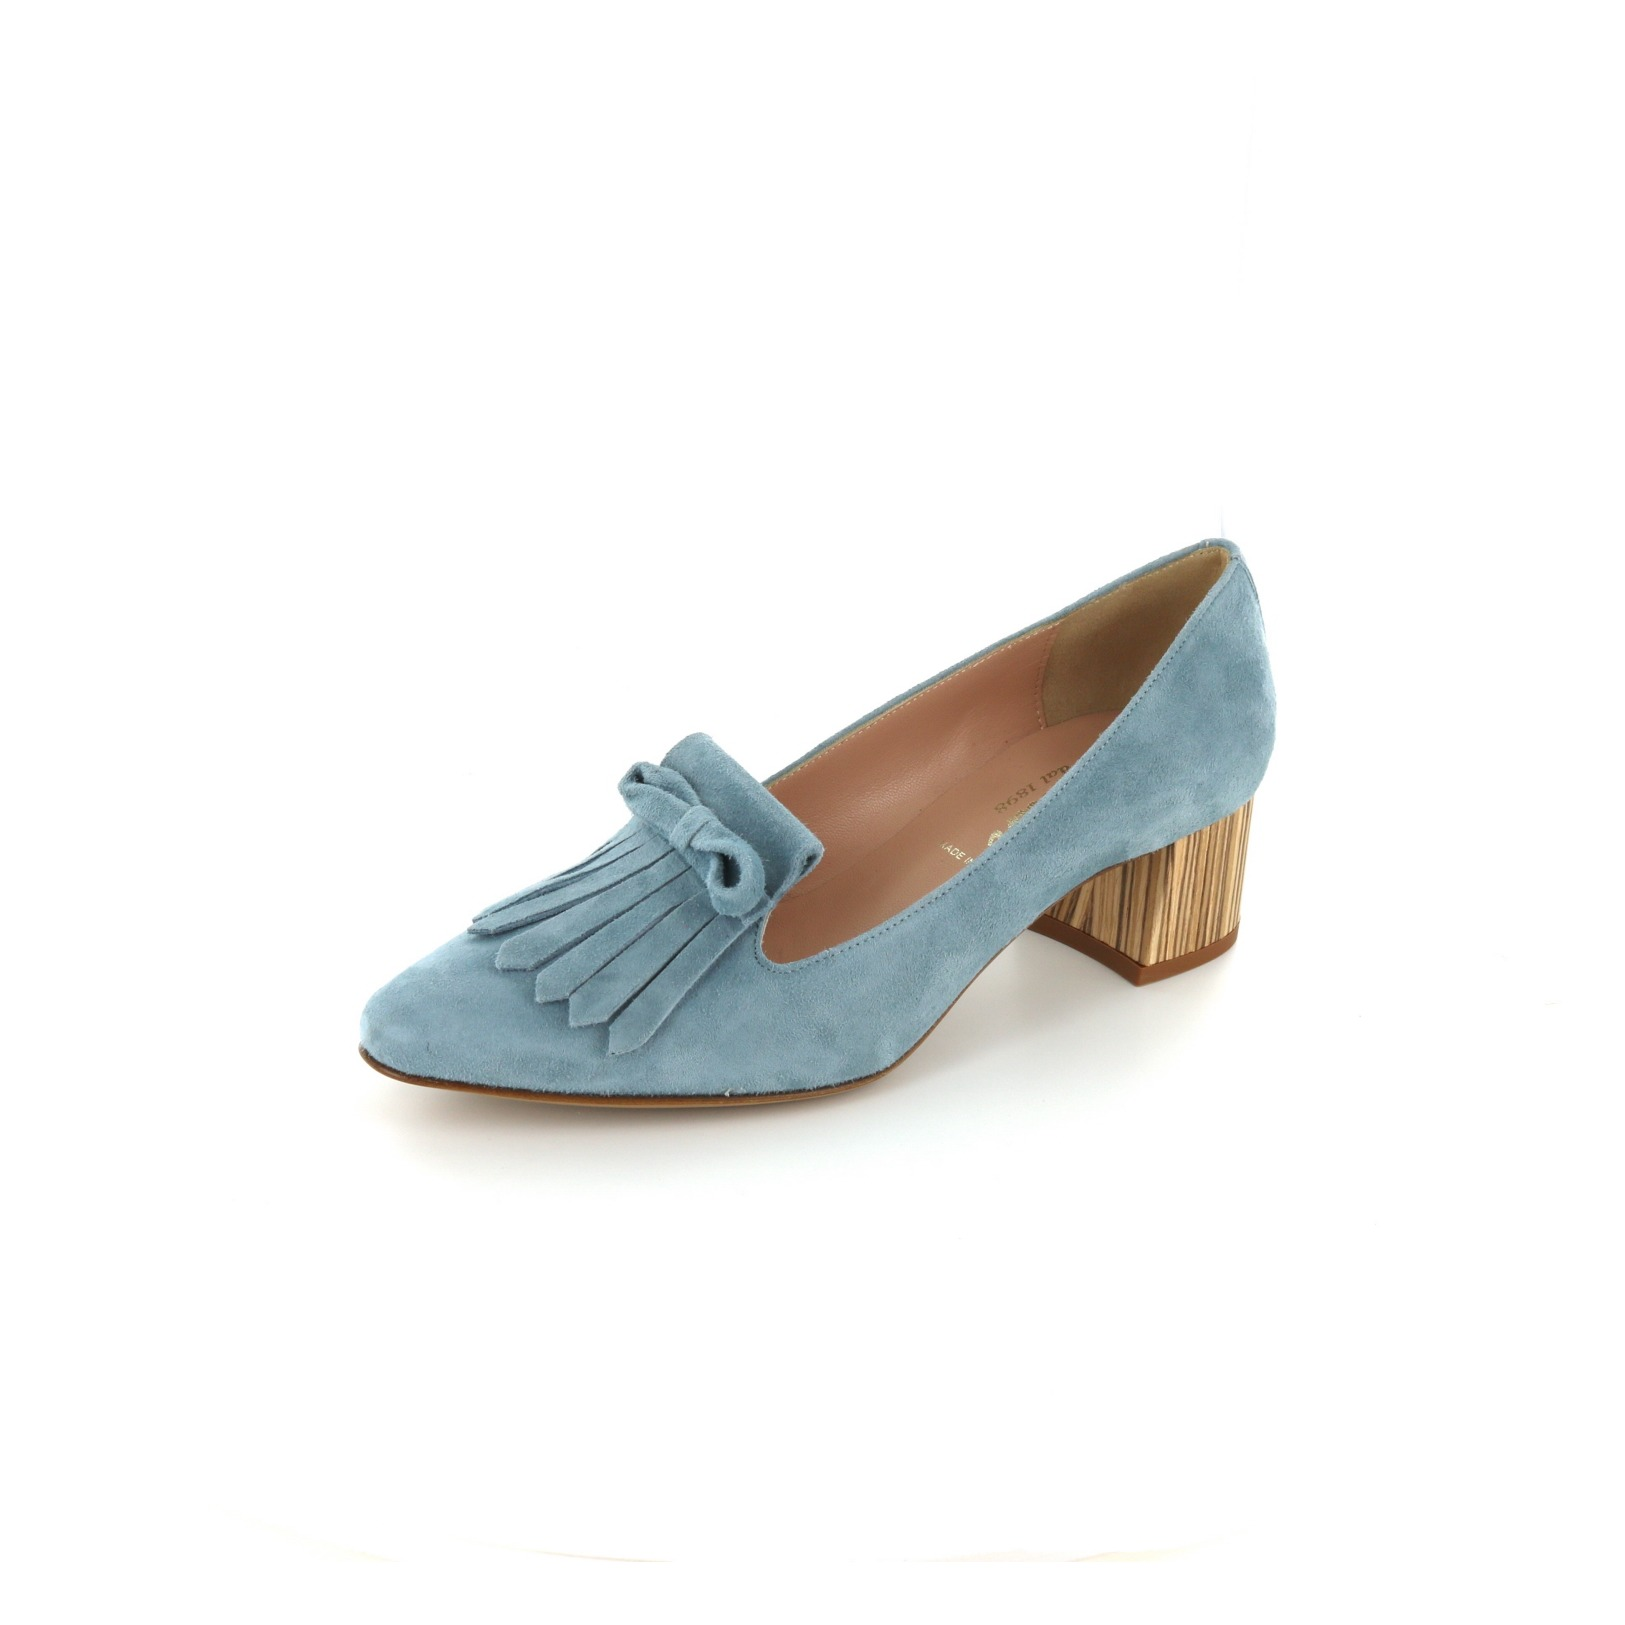 VOLTAN / Pumps, licht blauw